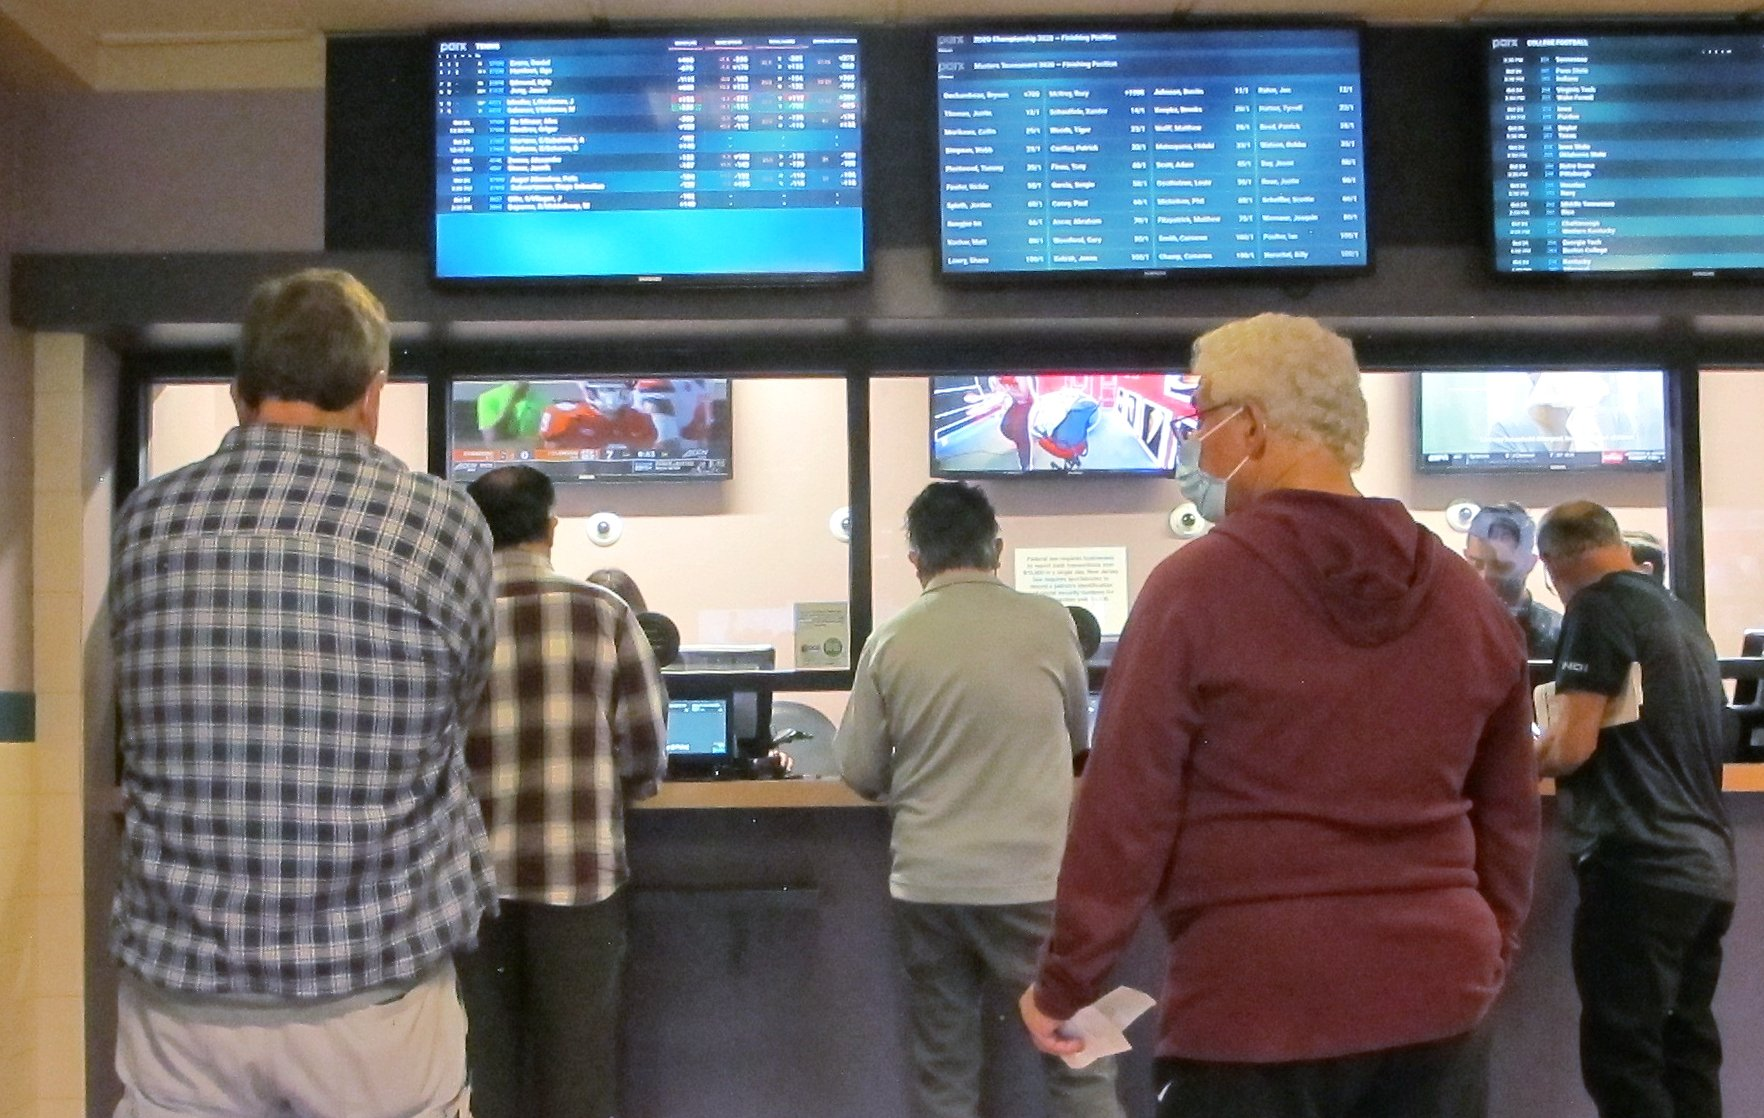 NJ vote would allow sports betting on all college games